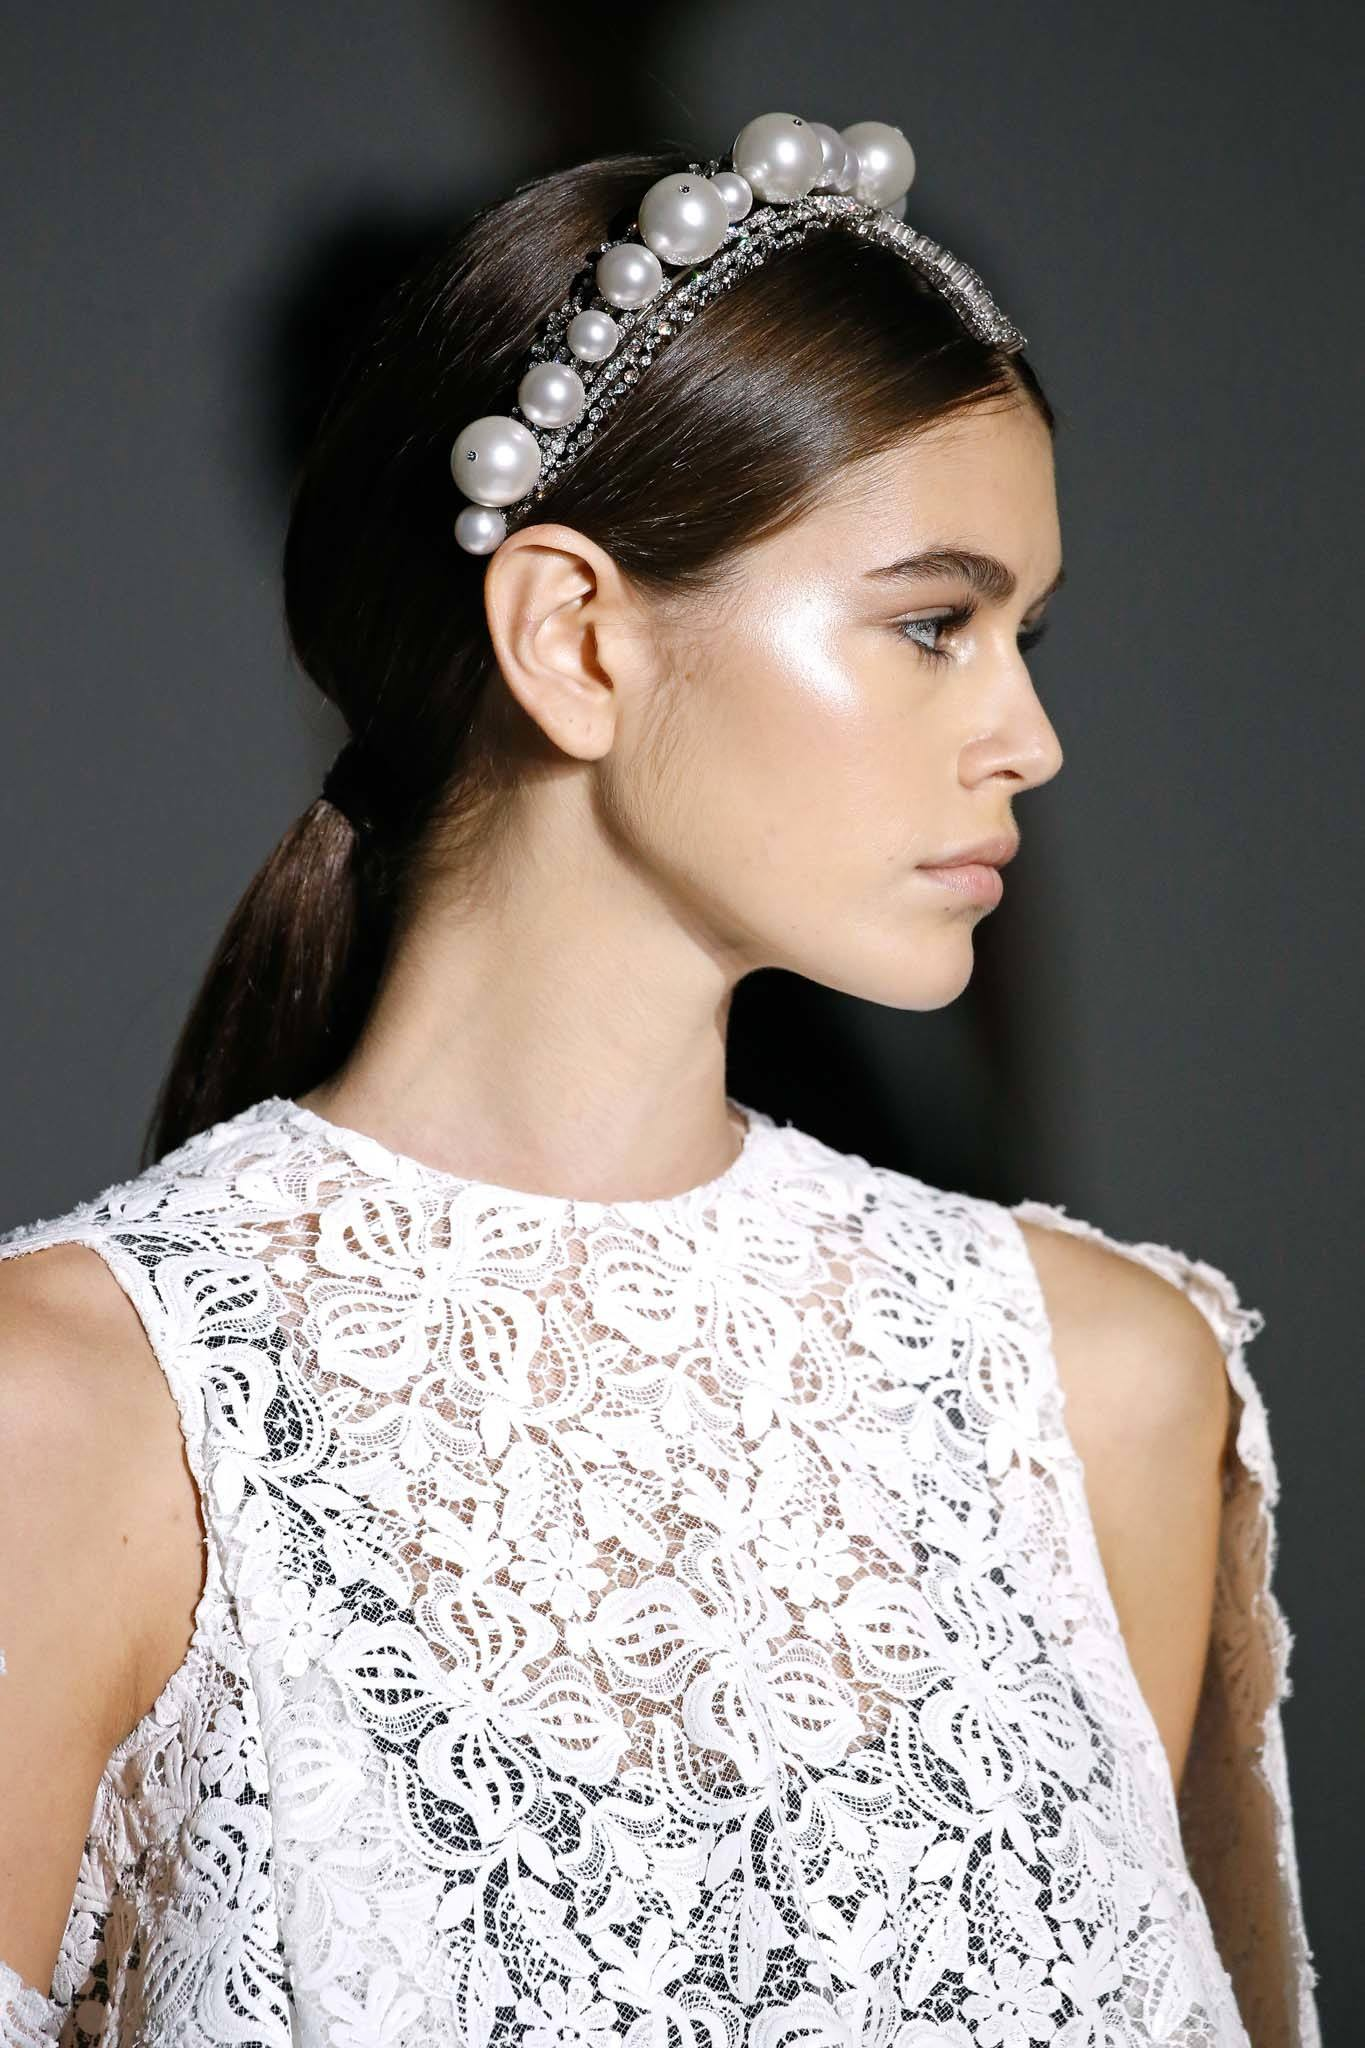 Wedding guest hair: Shot of a model with long dark brown hair styled into a sleek ponytail, wearing a pearl headband on the runway